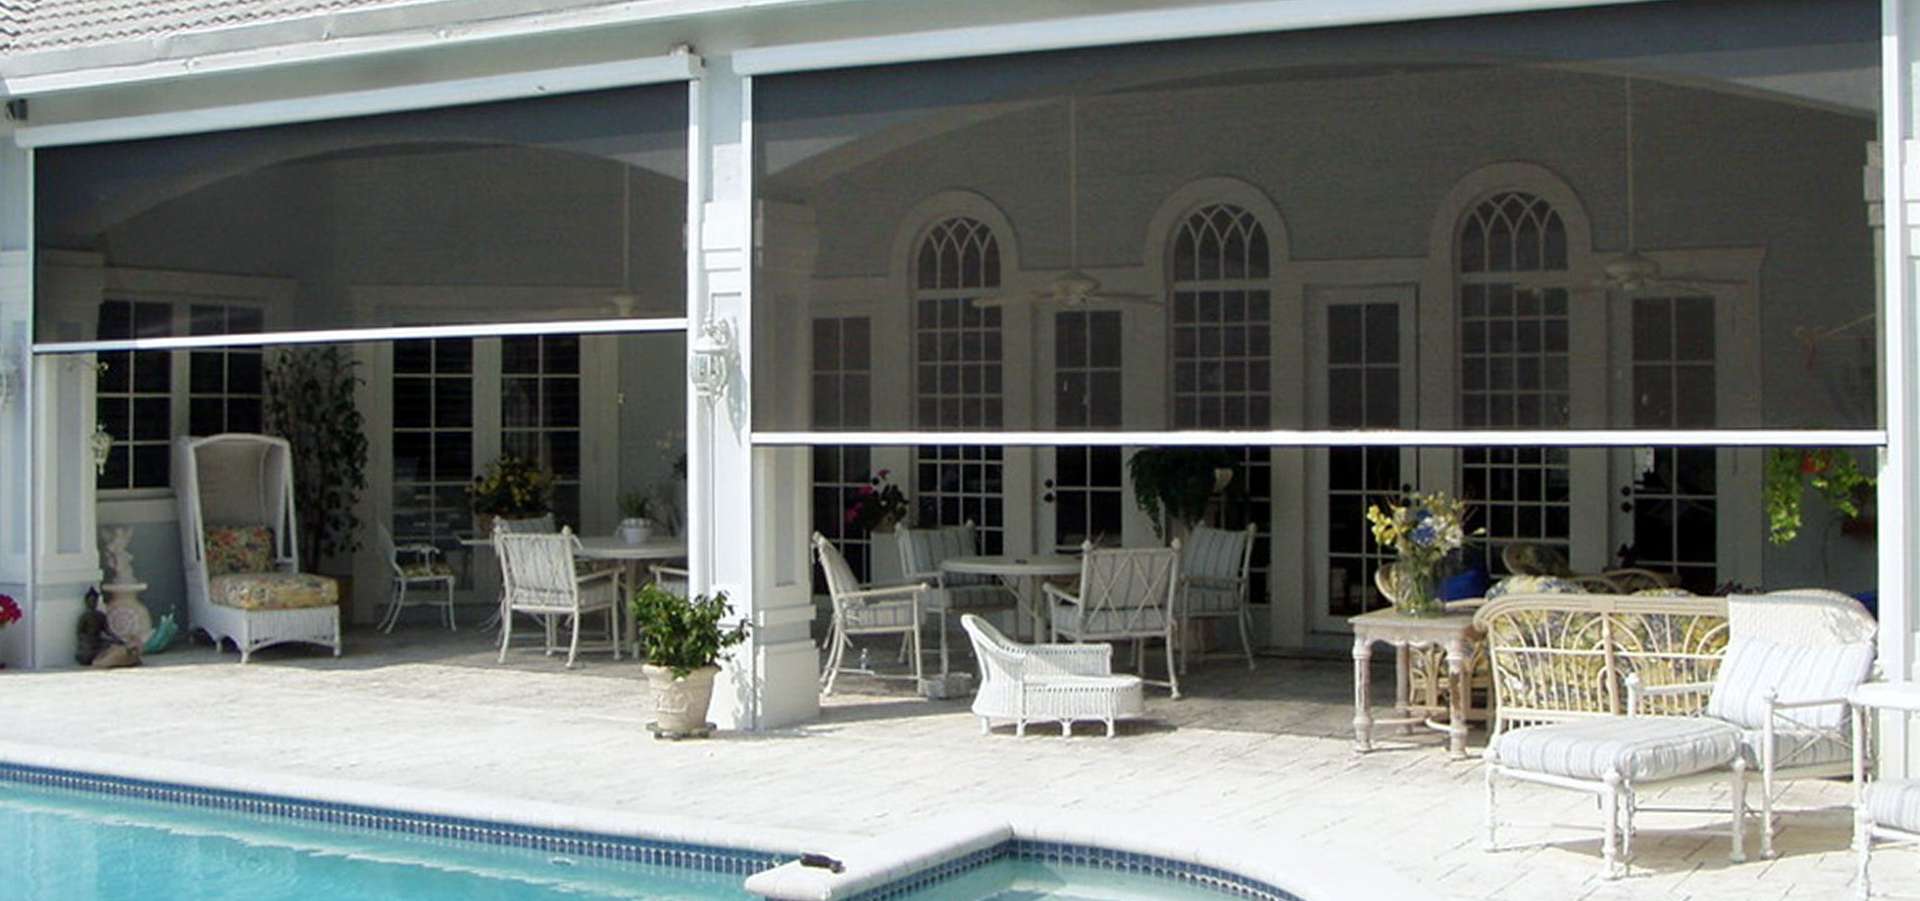 Retractable screen porch systems home design ideas for Retractable screen porch systems